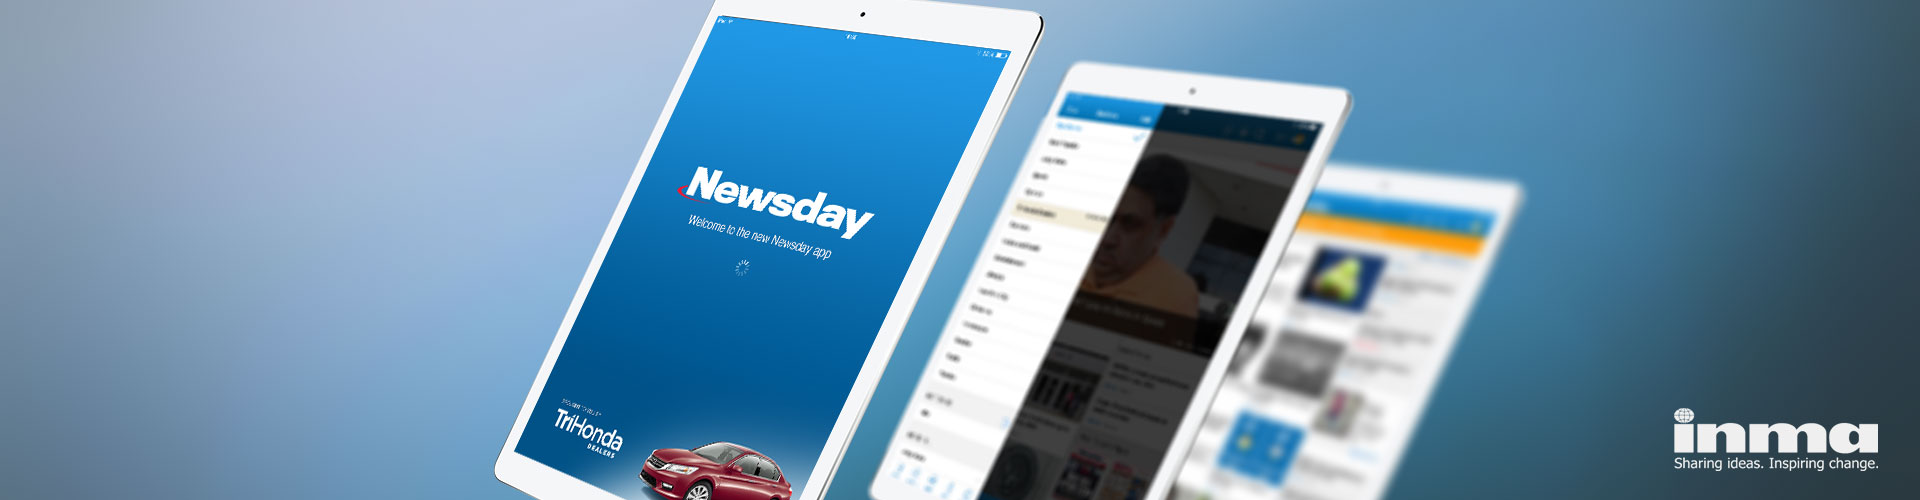 Newsday Wins INMA Global Media Award for 'Best Use of Mobile'